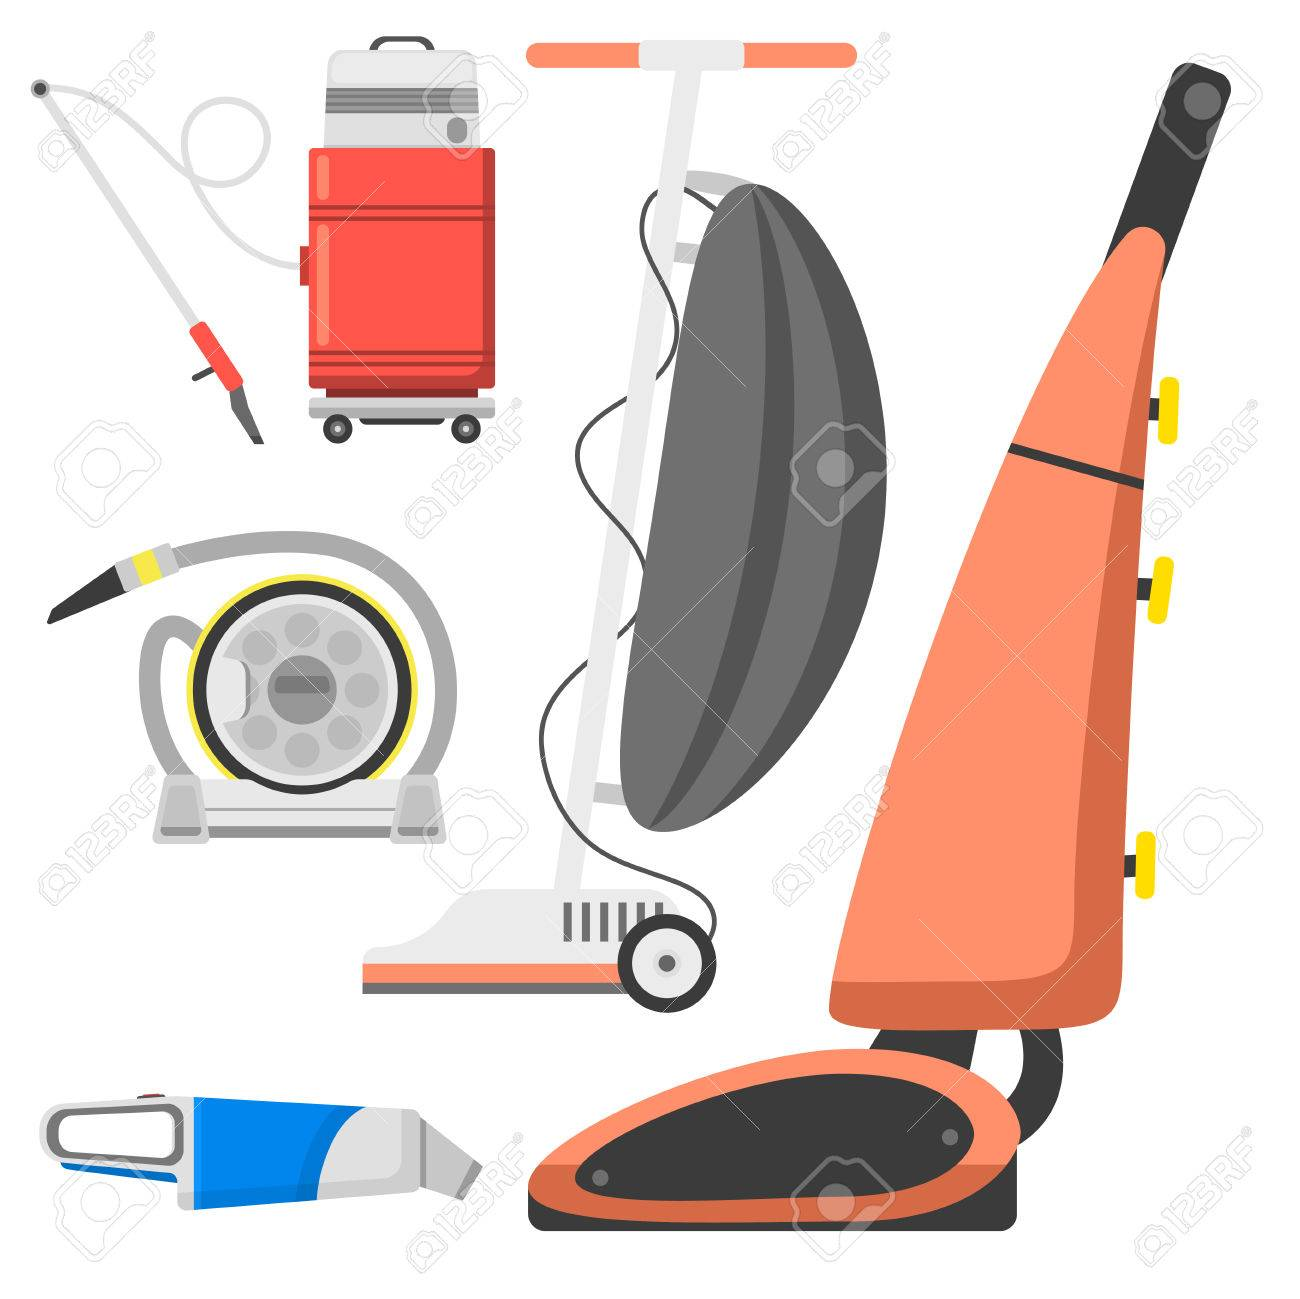 Professional Cleaning Equipment Isolated Vector Home Cleanup Vacuum  Housekeeping Service Cleaning Equipment Housework Tools. Standard